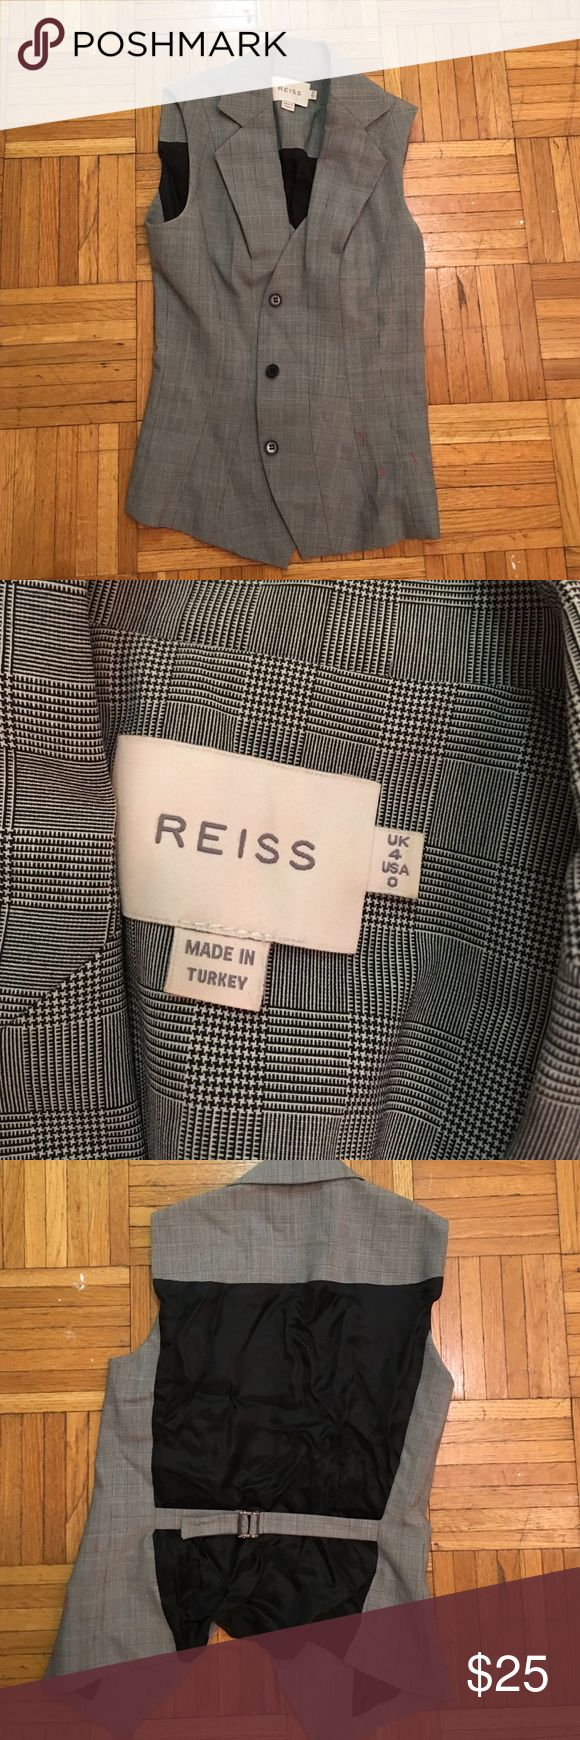 Reiss stylish vest Little wrinkled but otherwise great condition! Reiss Jackets & Coats Vests